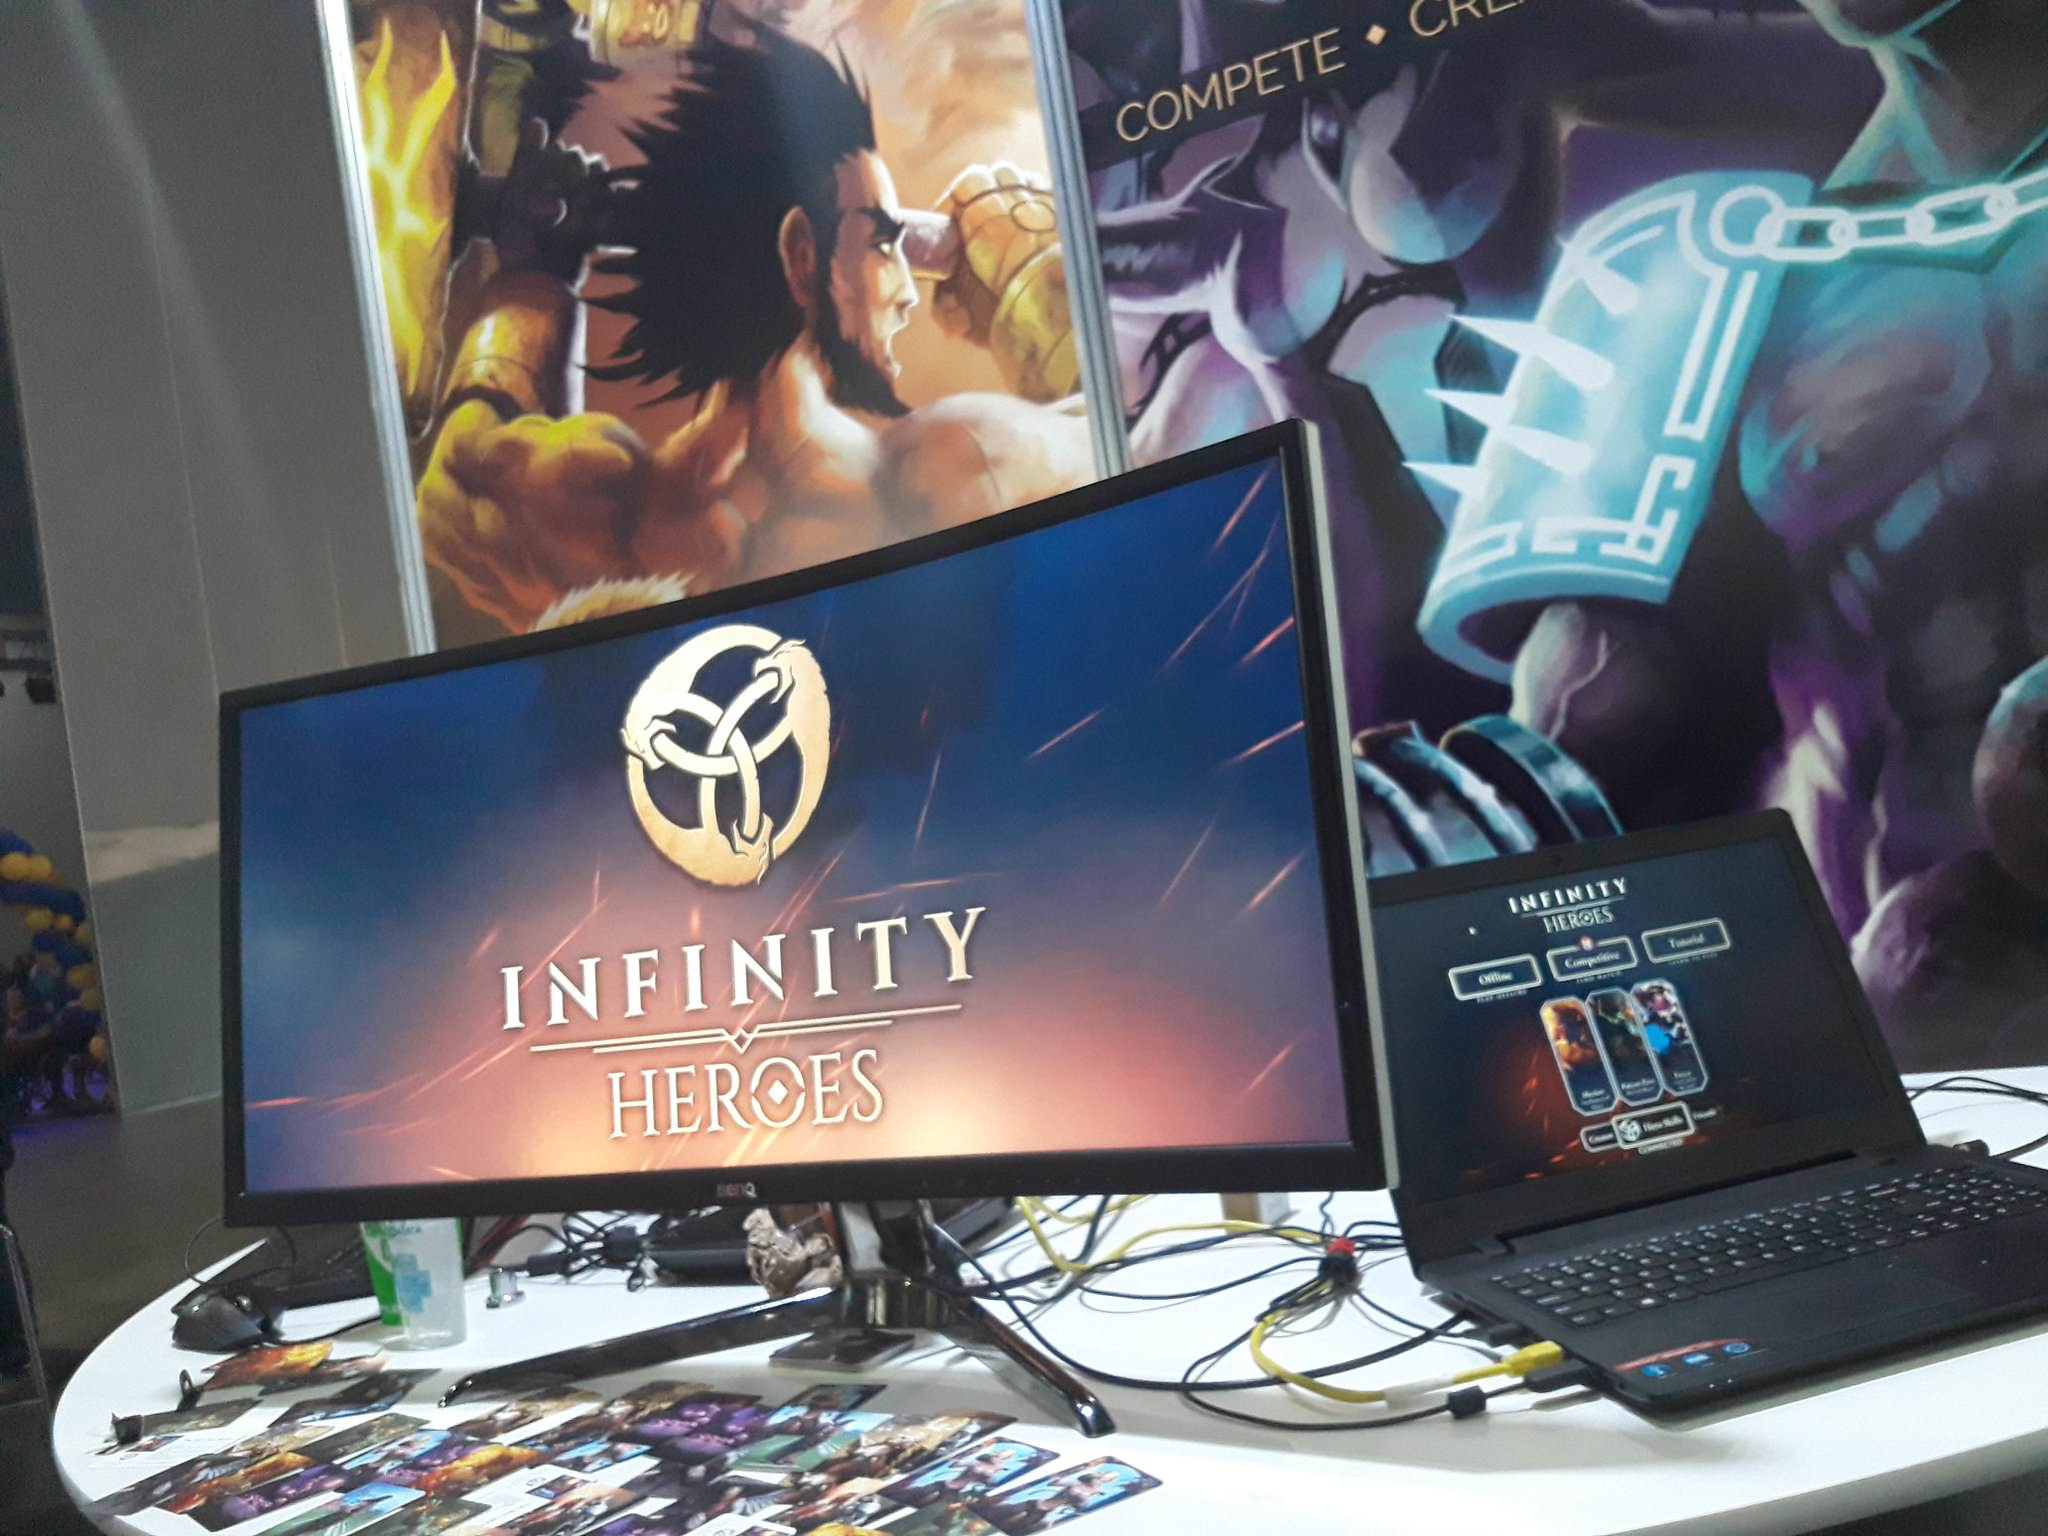 Part of the Infinity Heroes Booth at PAX Aus